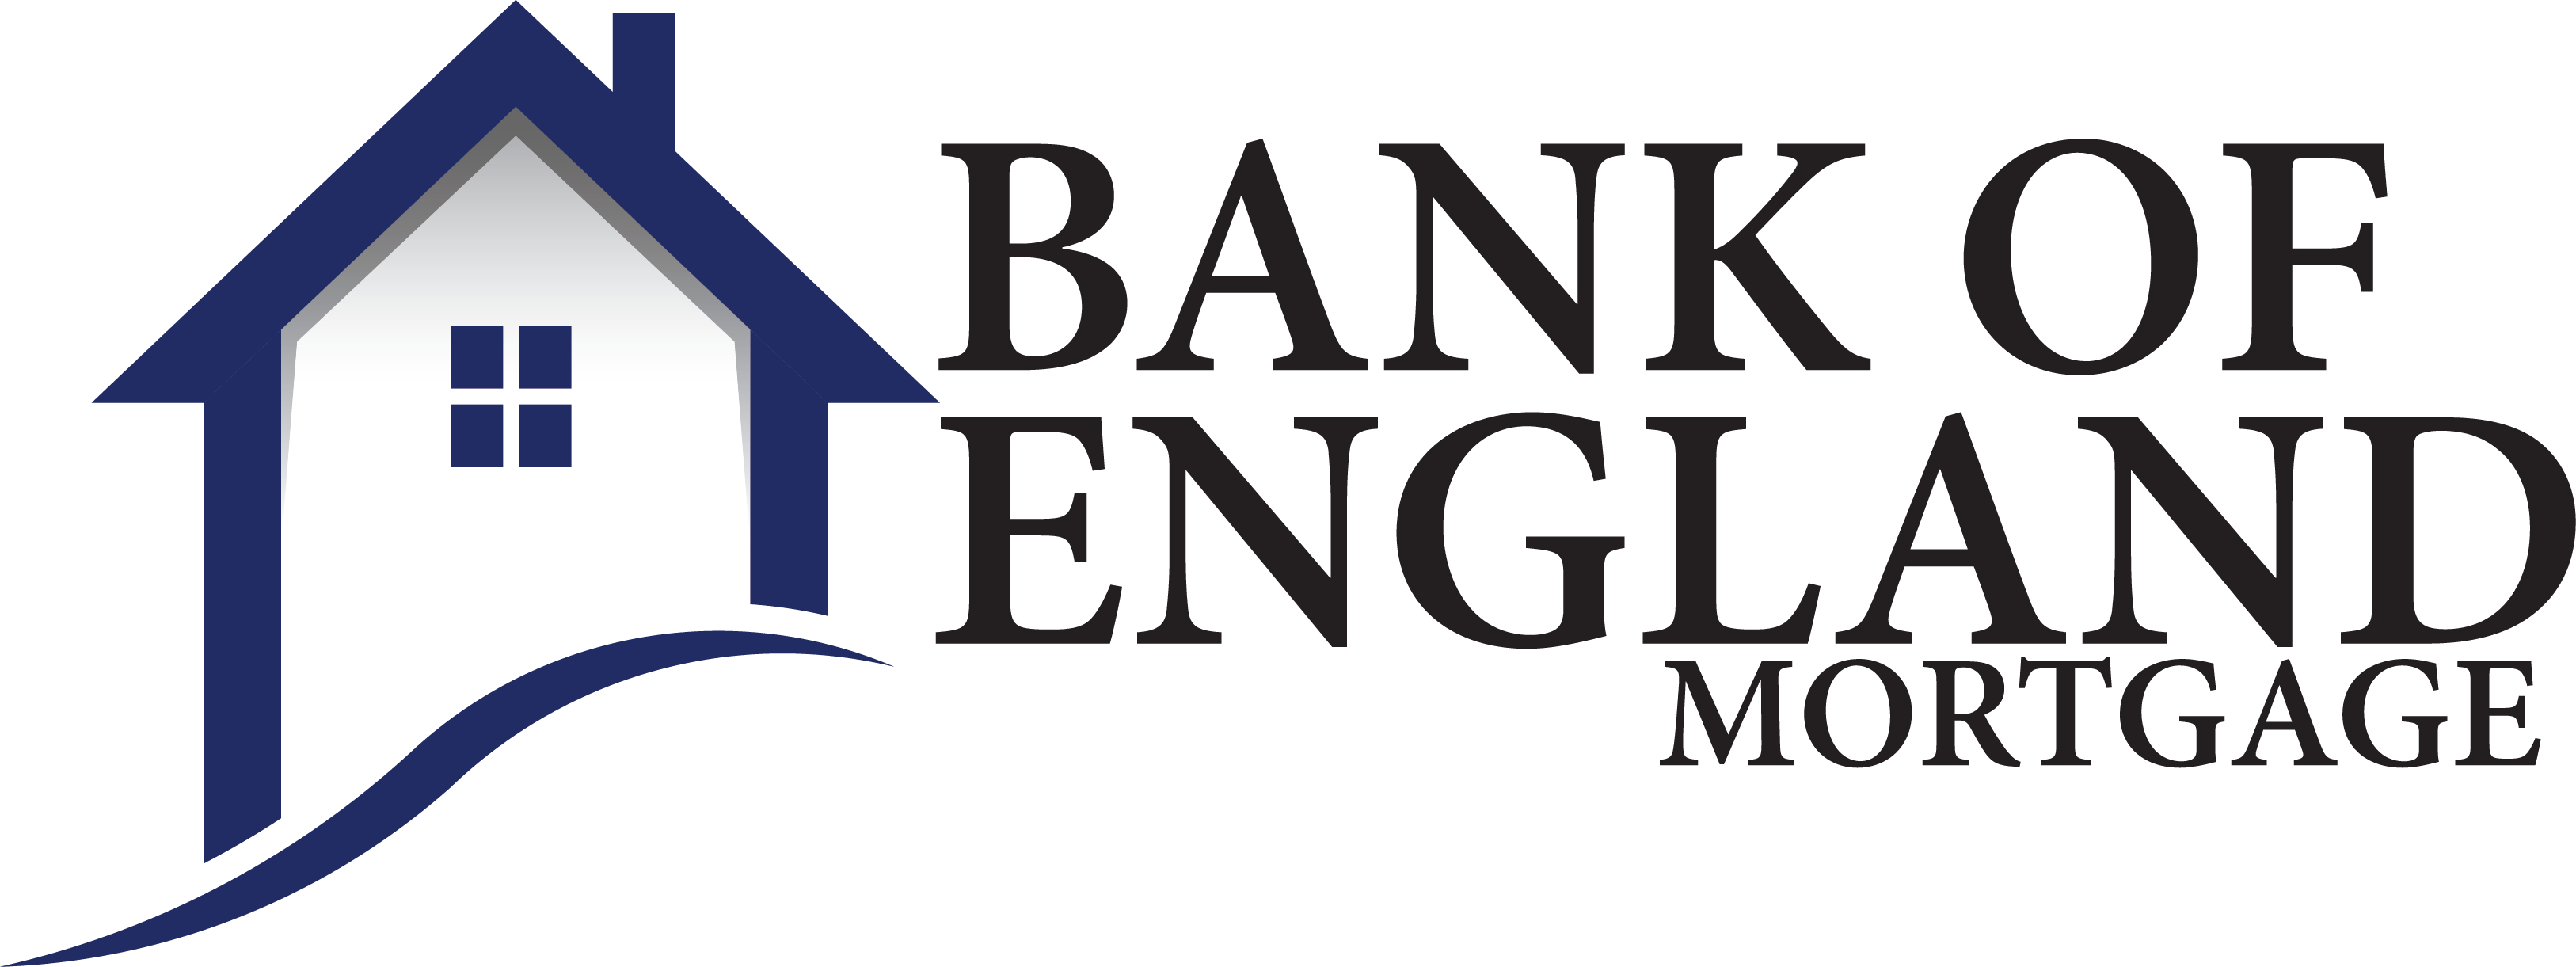 Bank of England Mortgage Logo